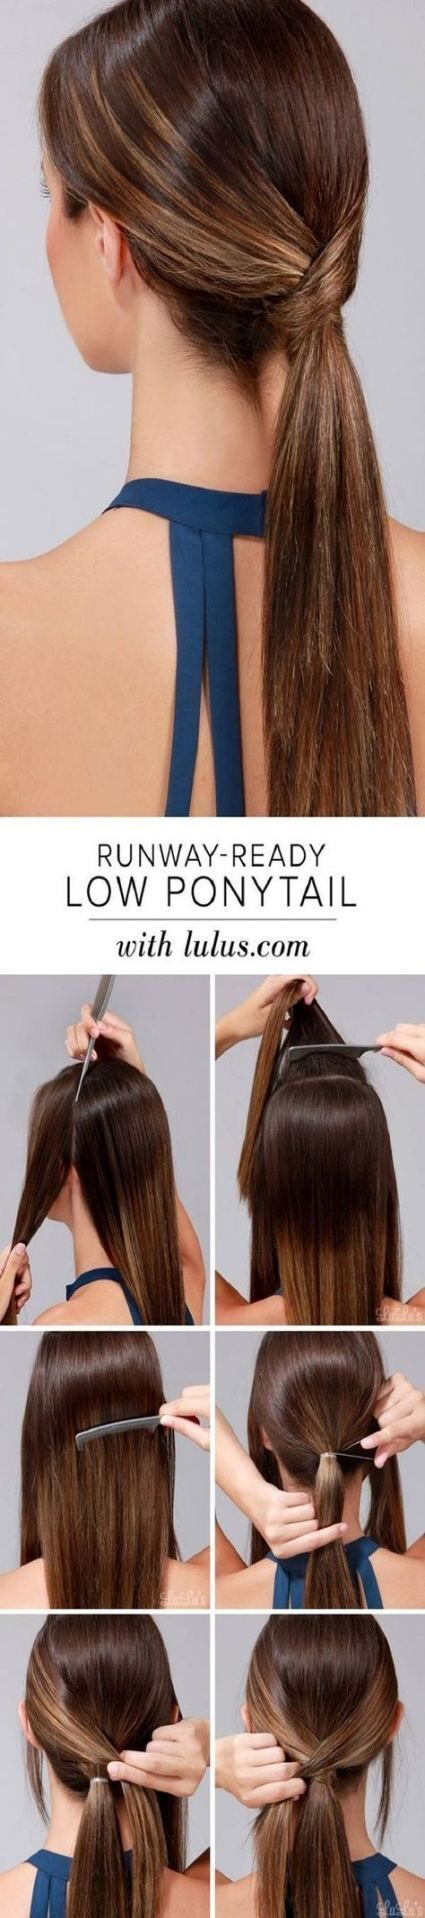 Hairstyles Lazy Girl Quick 31 Ideas, #Girl #Hairstyles #ideas #Lazy #Quick #quickhairstylela